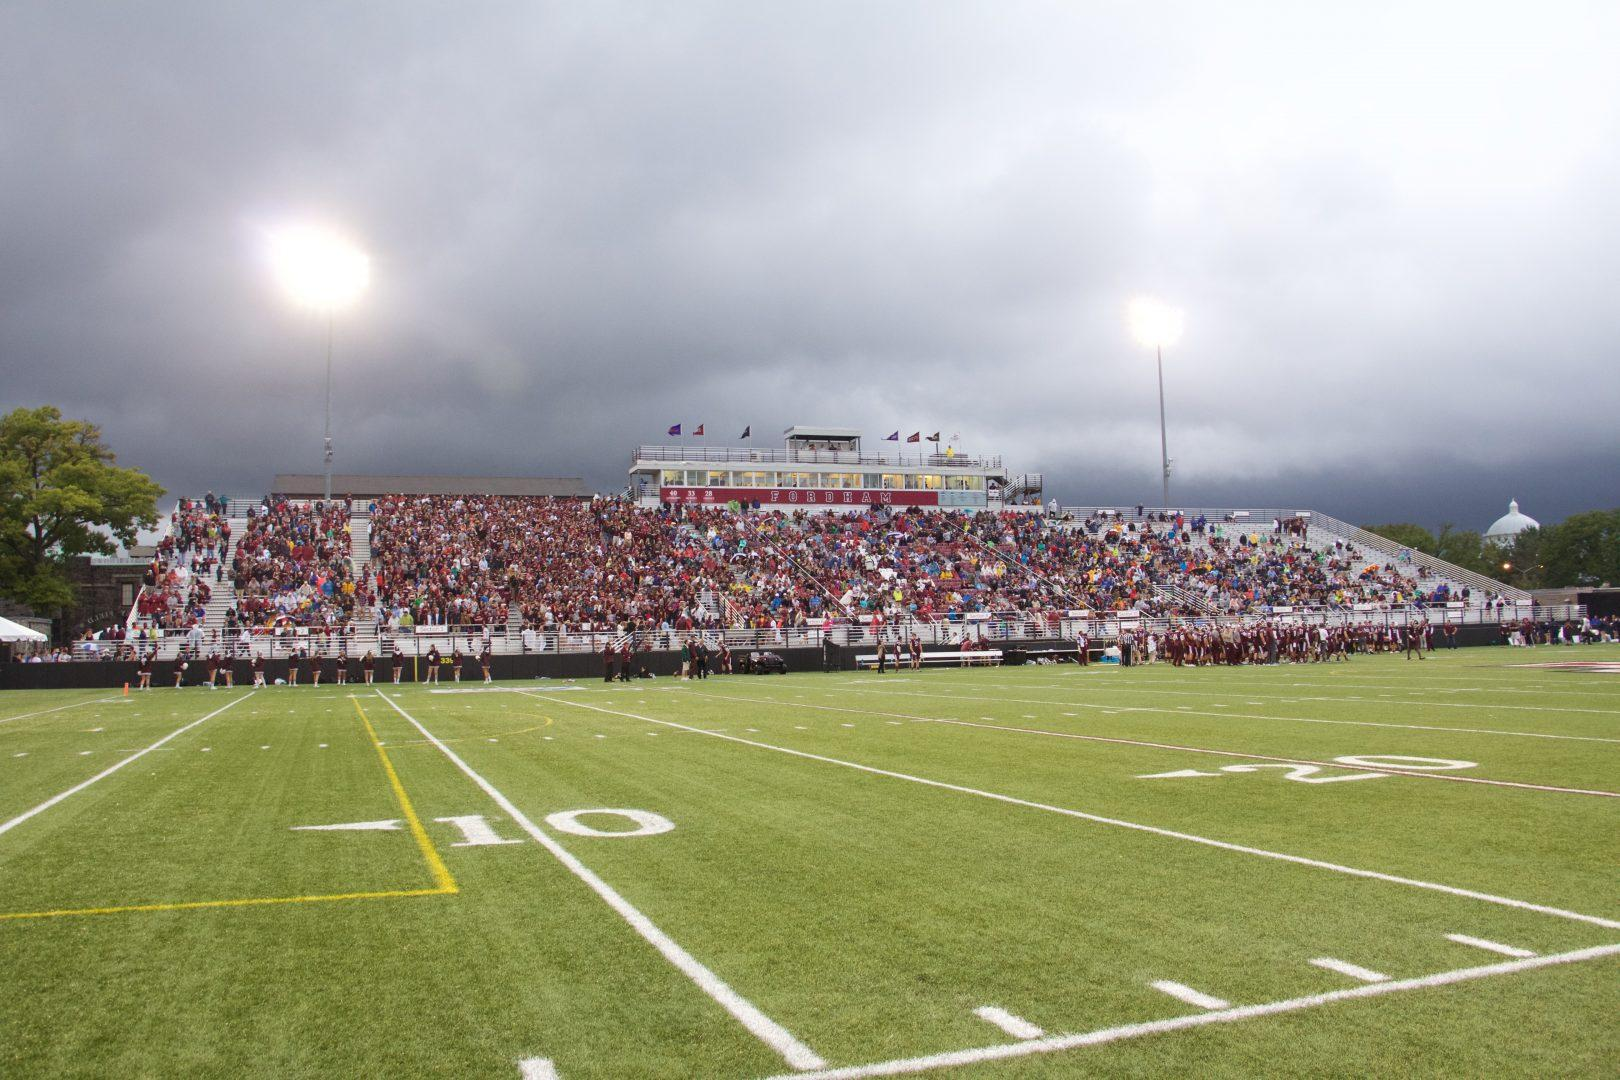 Fans packed the Jack Coffey Field during the first home game earlier this season. (Luke Momo/The Observer)